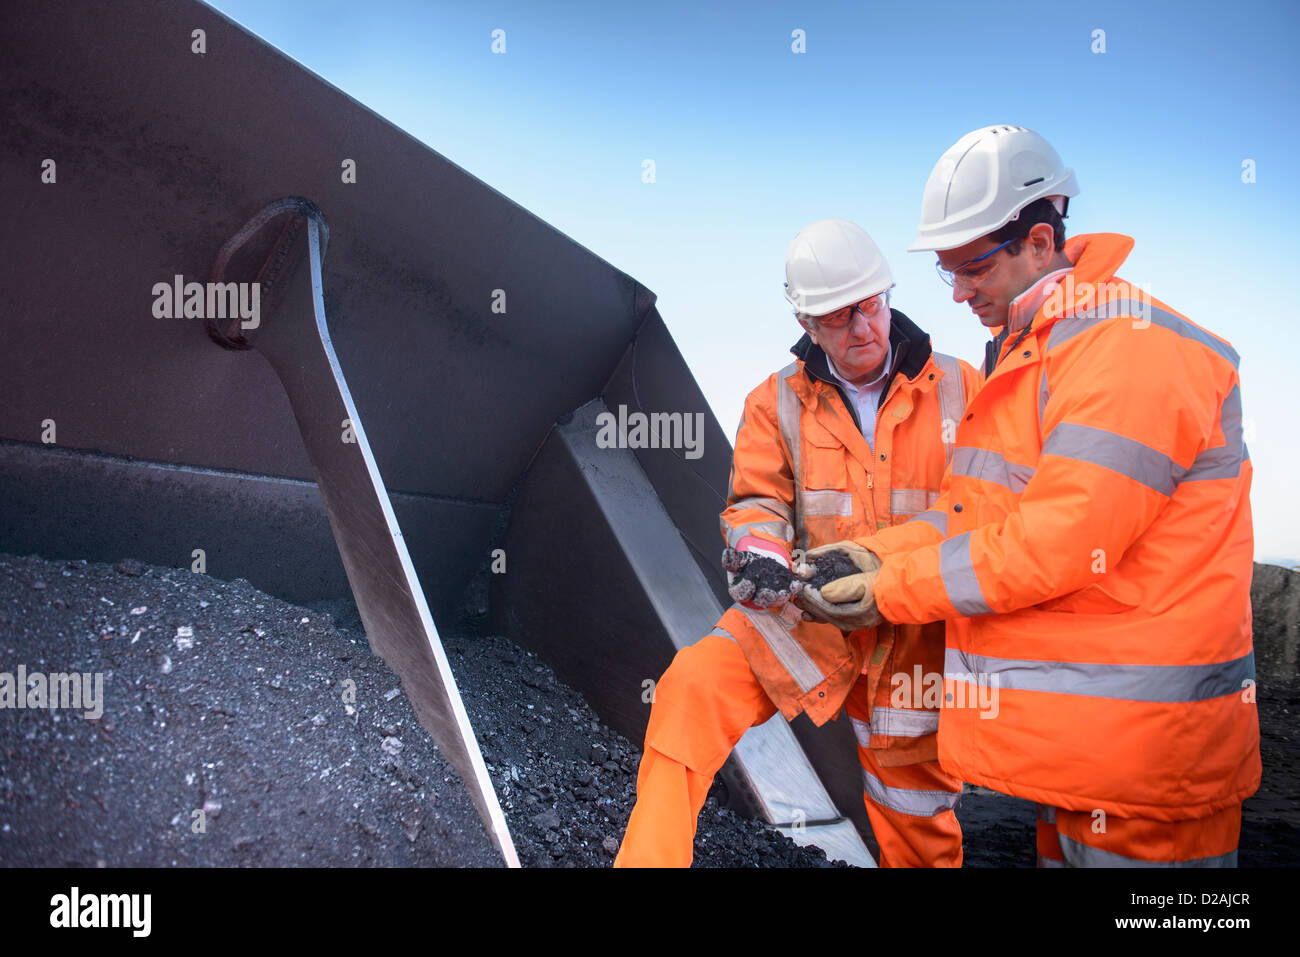 Workers inspecting coal at surface mine - Stock Image